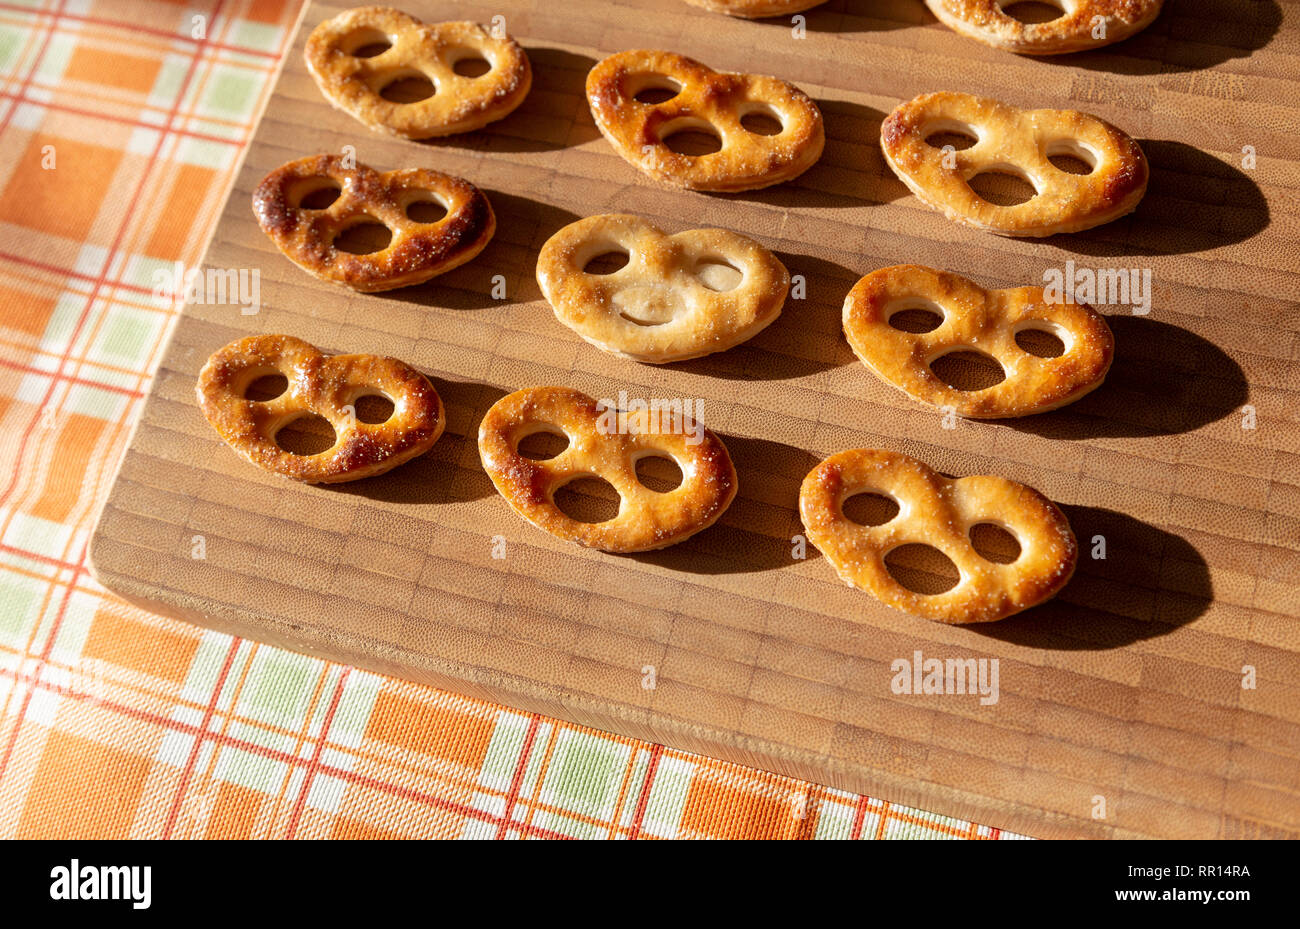 Several biscuits on cutting board with one different from others - Stock Image